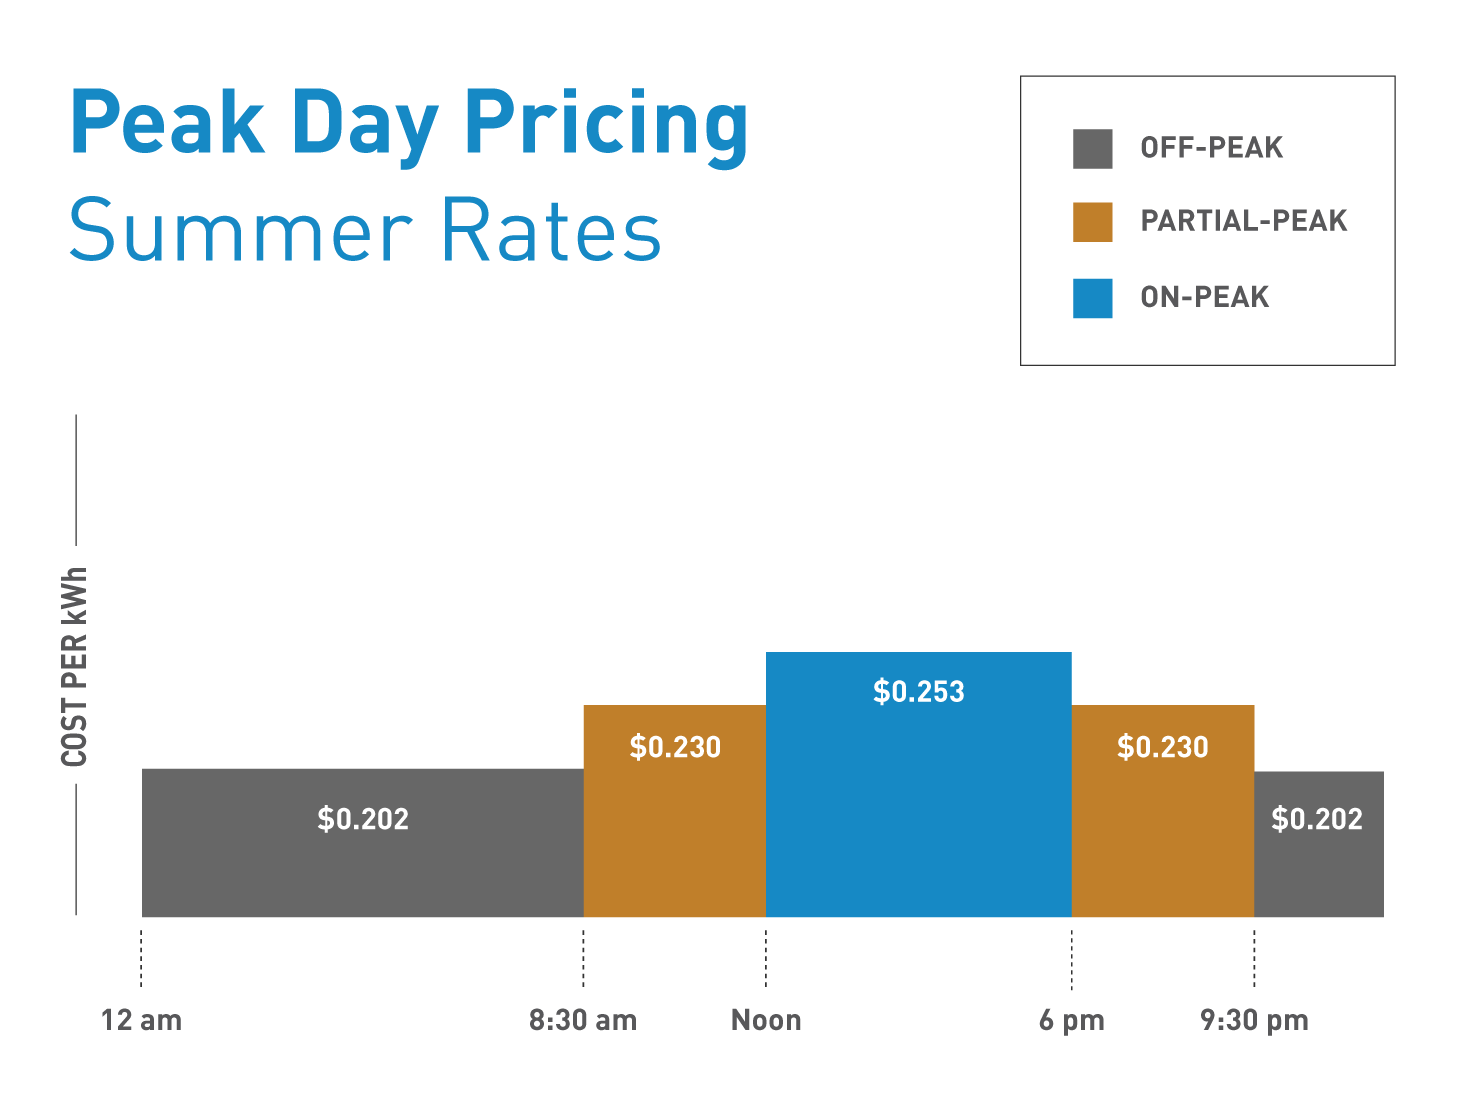 peak day pricing summer rates